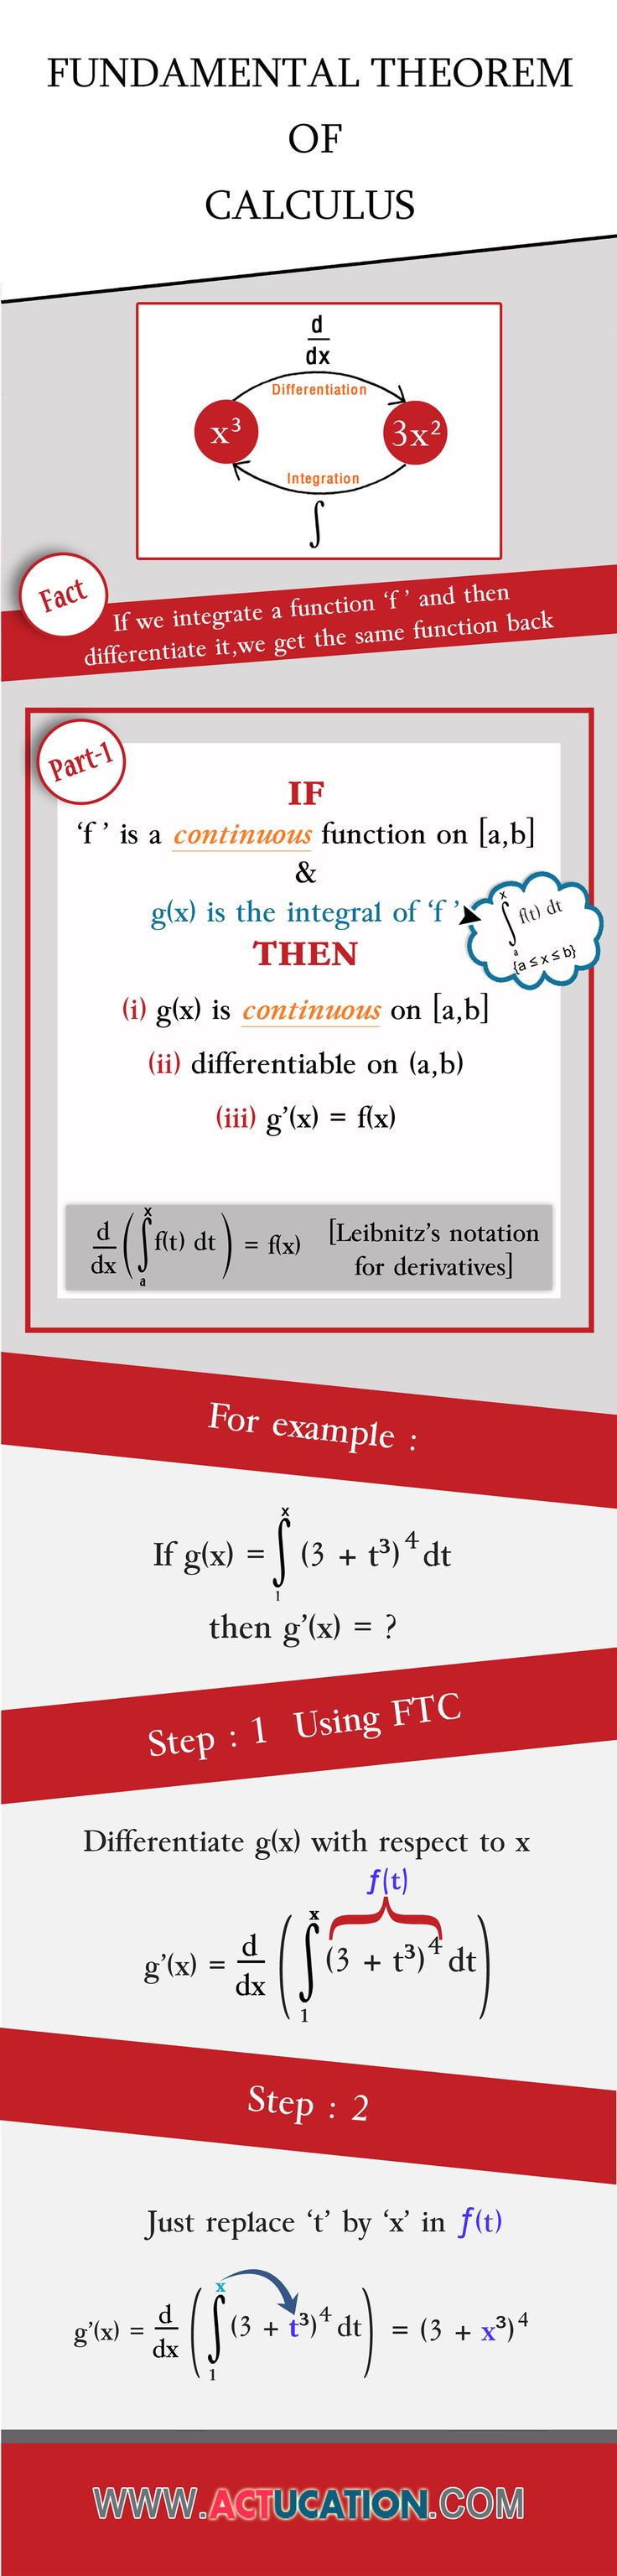 Fundamental Theorem of Calculus Infographic - http://elearninginfographics.com/fundamental-theorem-of-calculus-infographic/